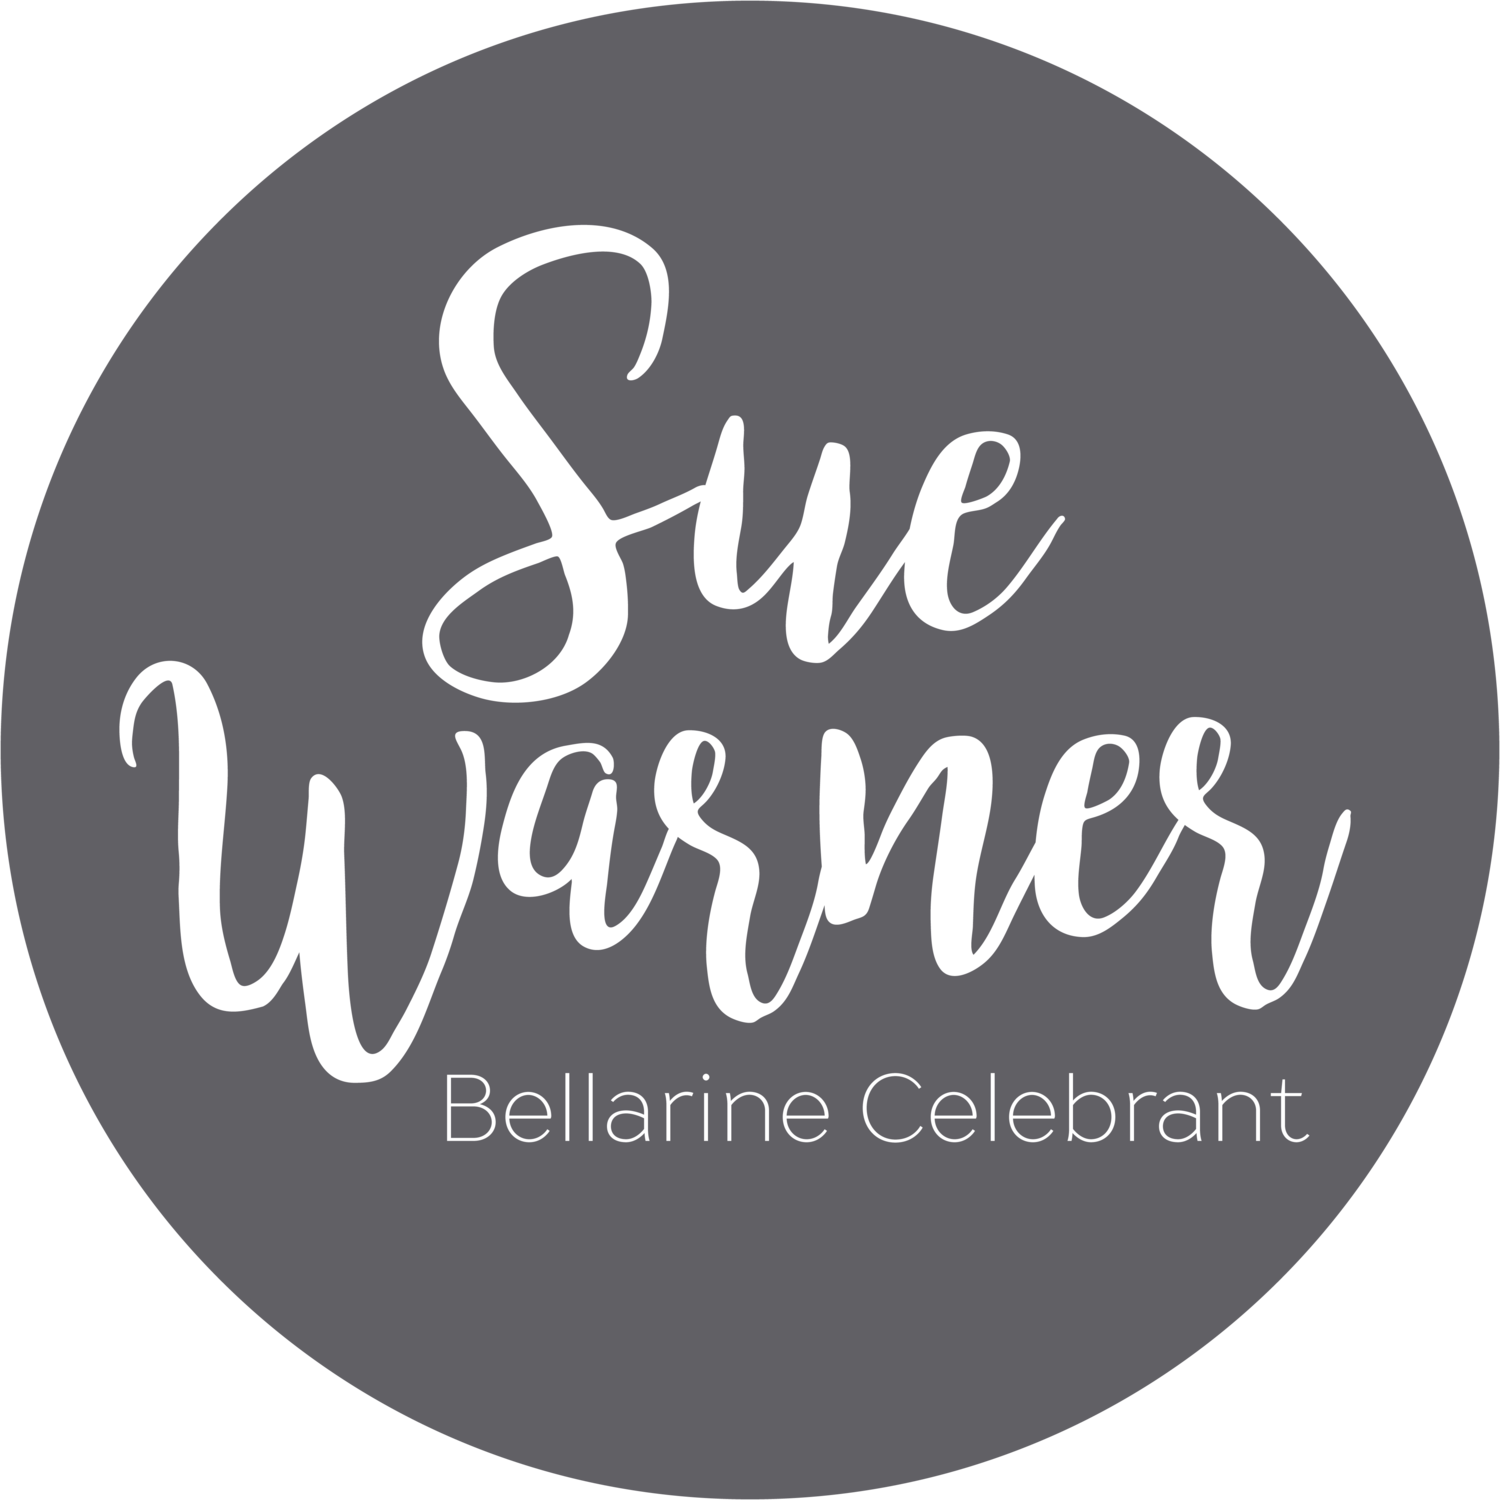 Bellarine Celebrant Sue Warner